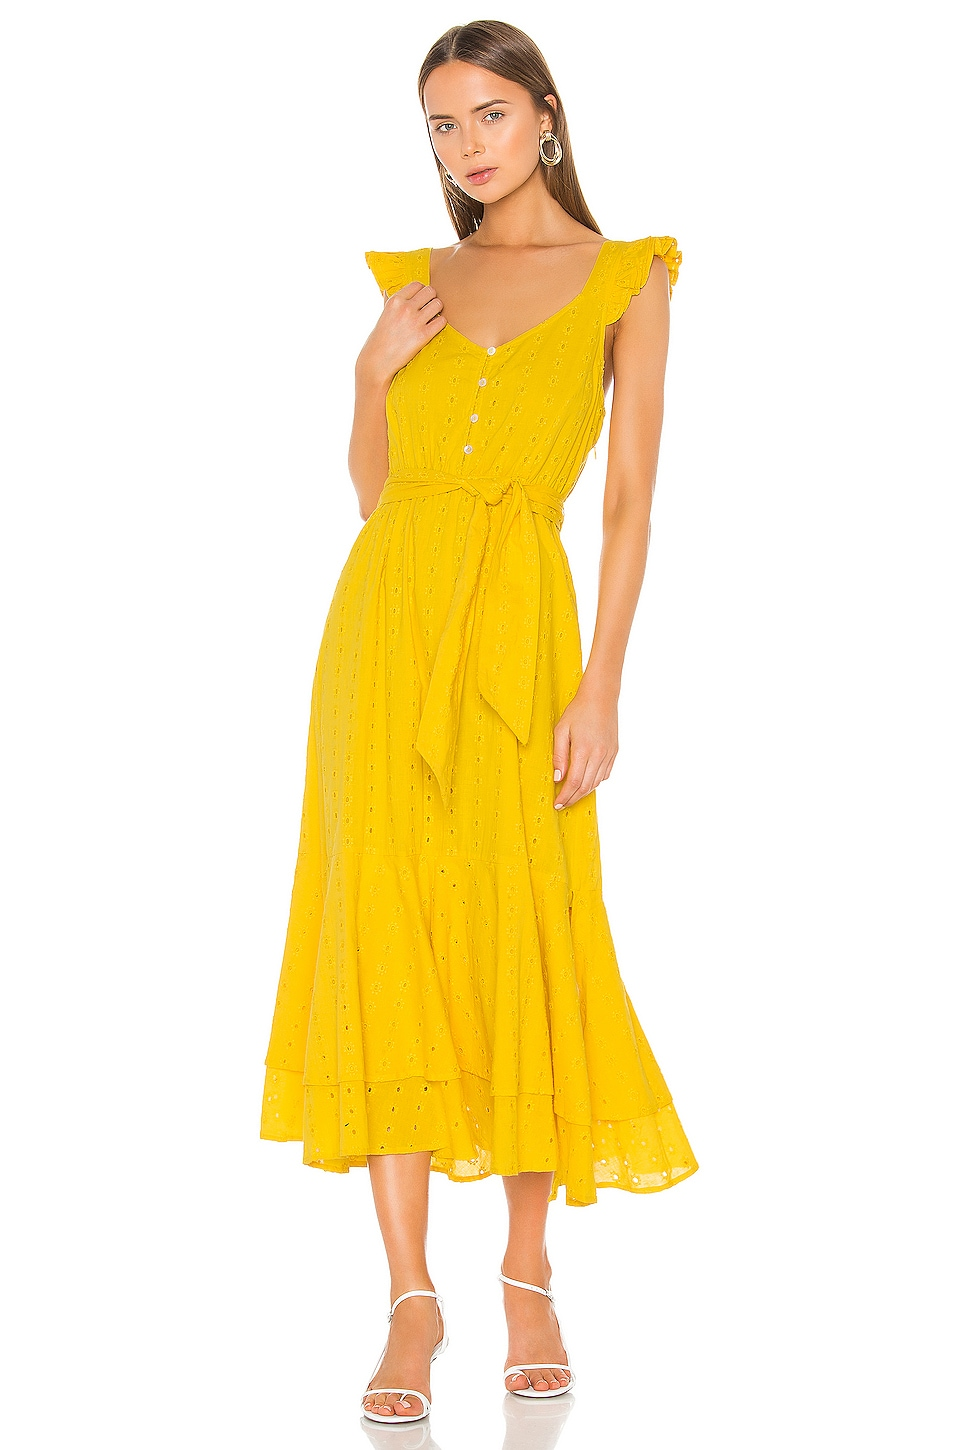 Cleobella Harlow Ankle Dress in Lemon